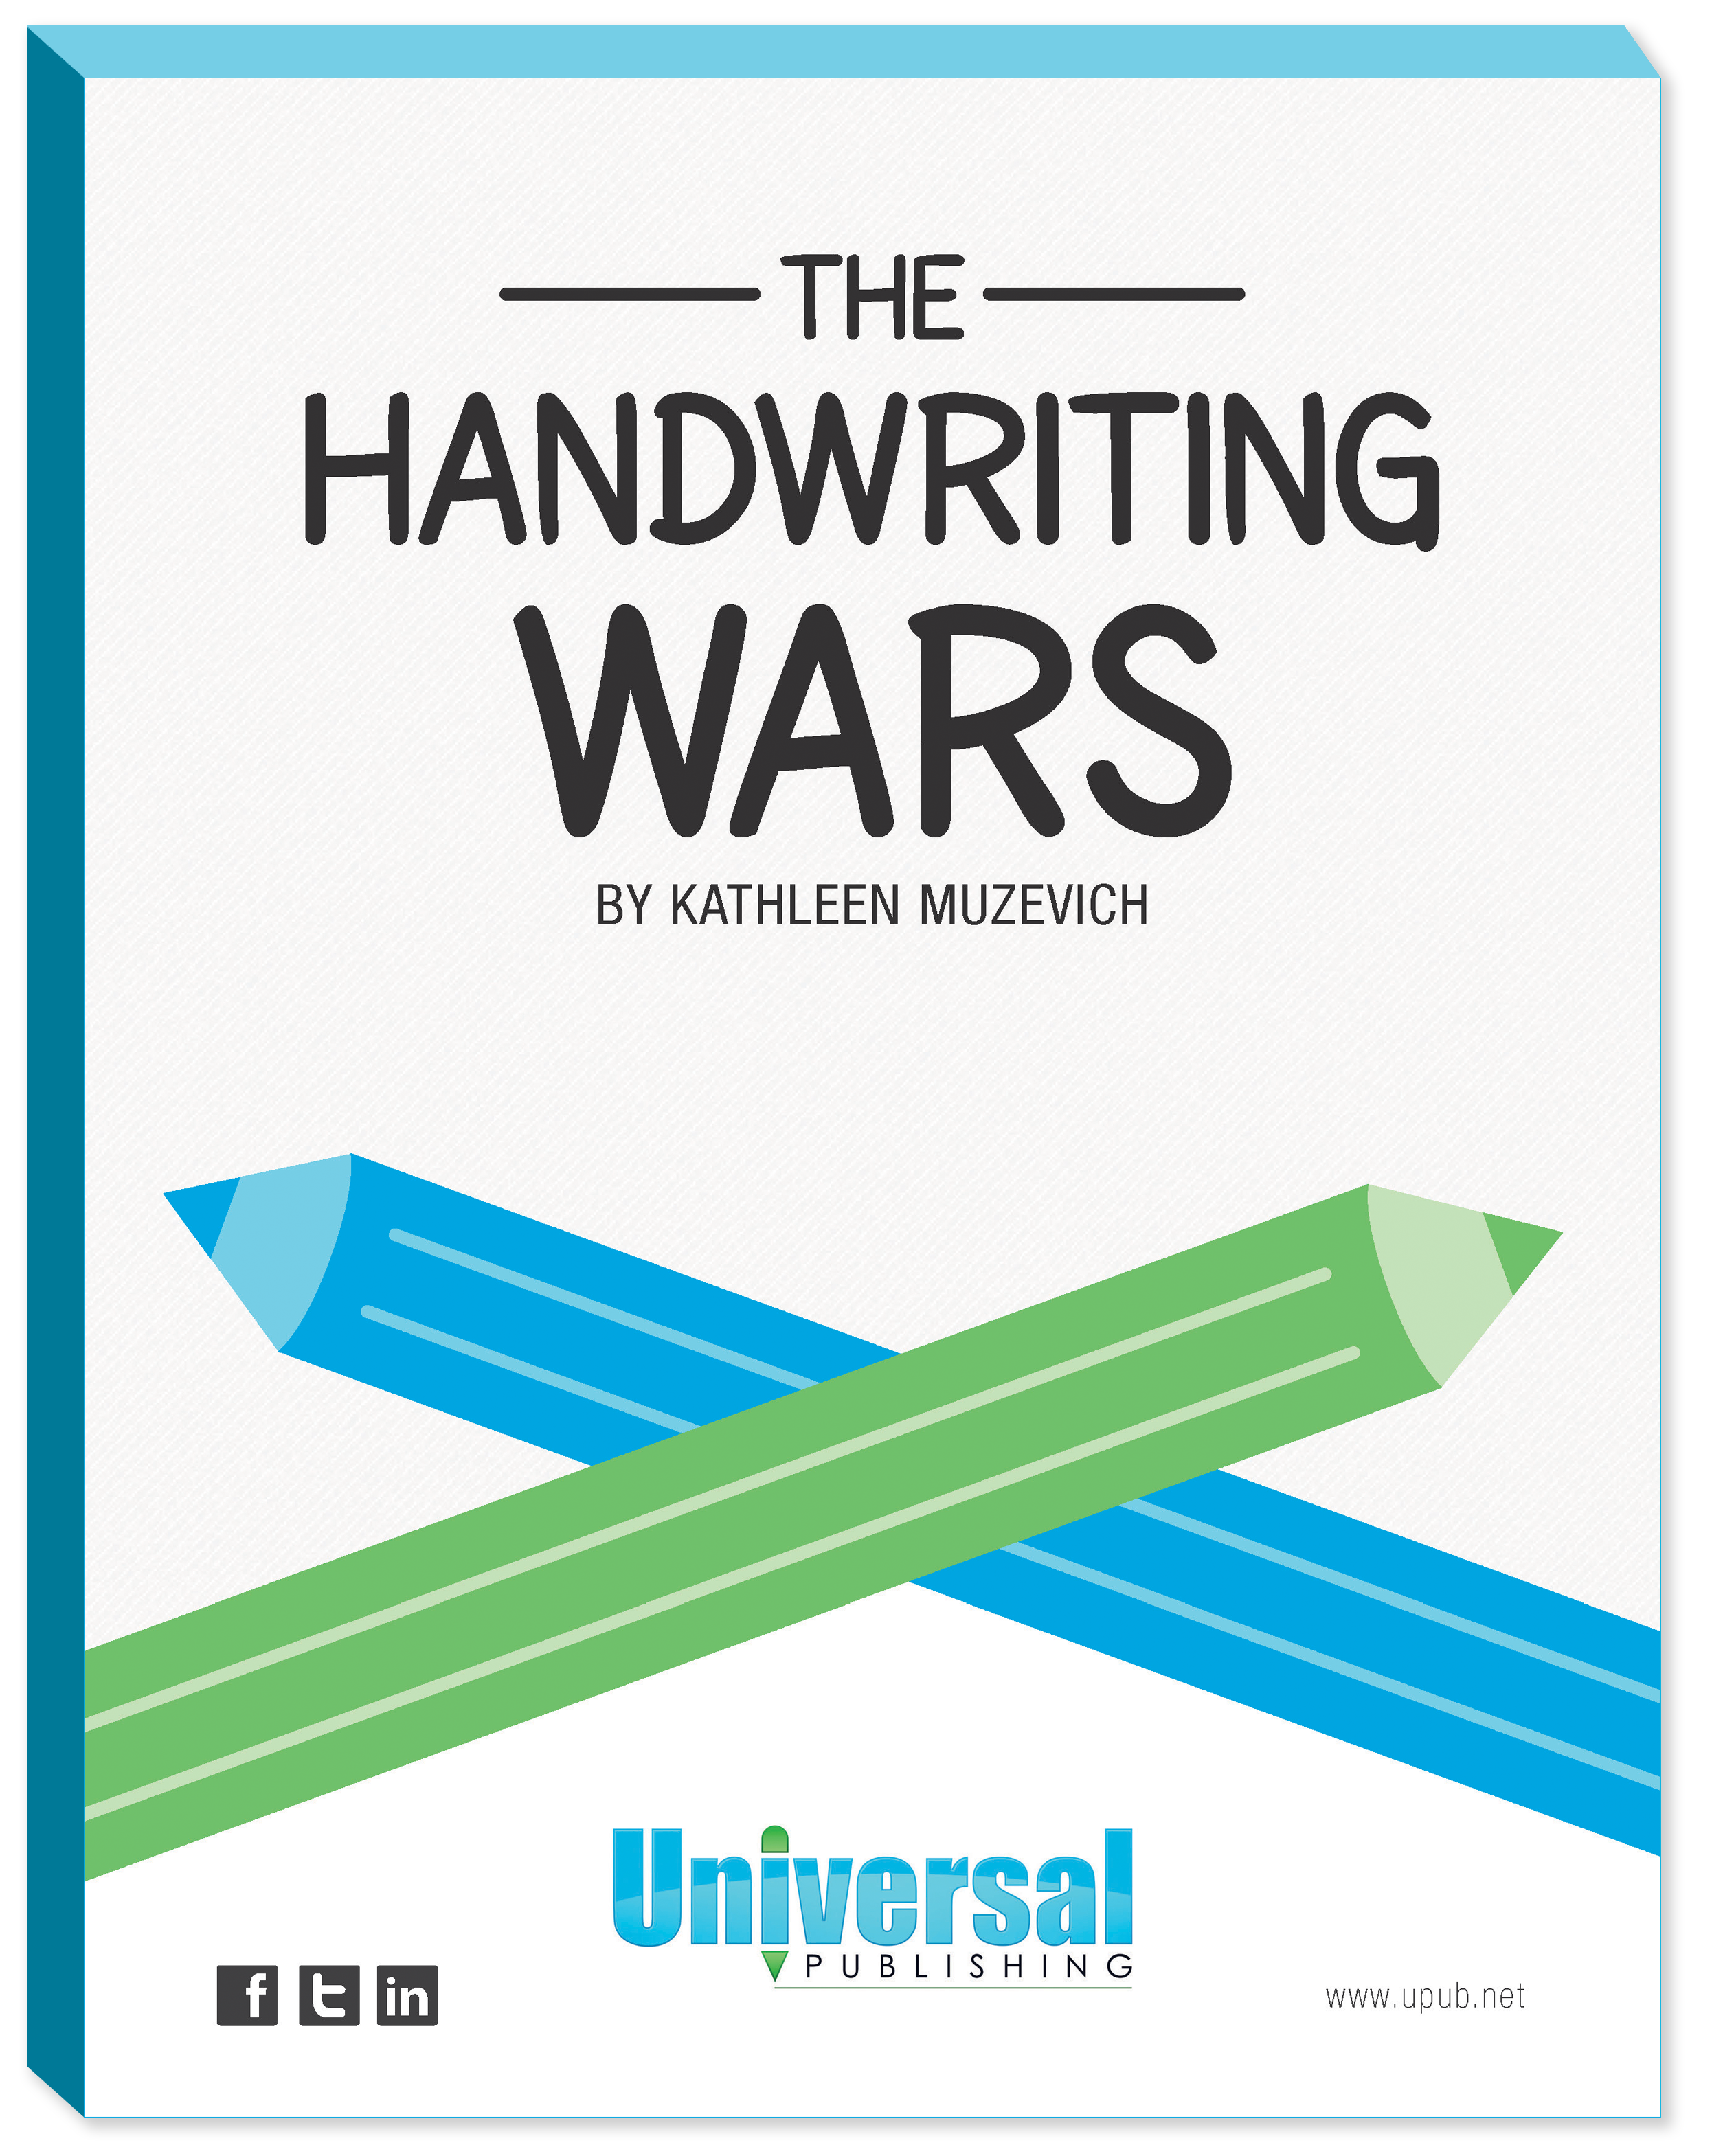 Handwriting-Wars-Ebook-Cover